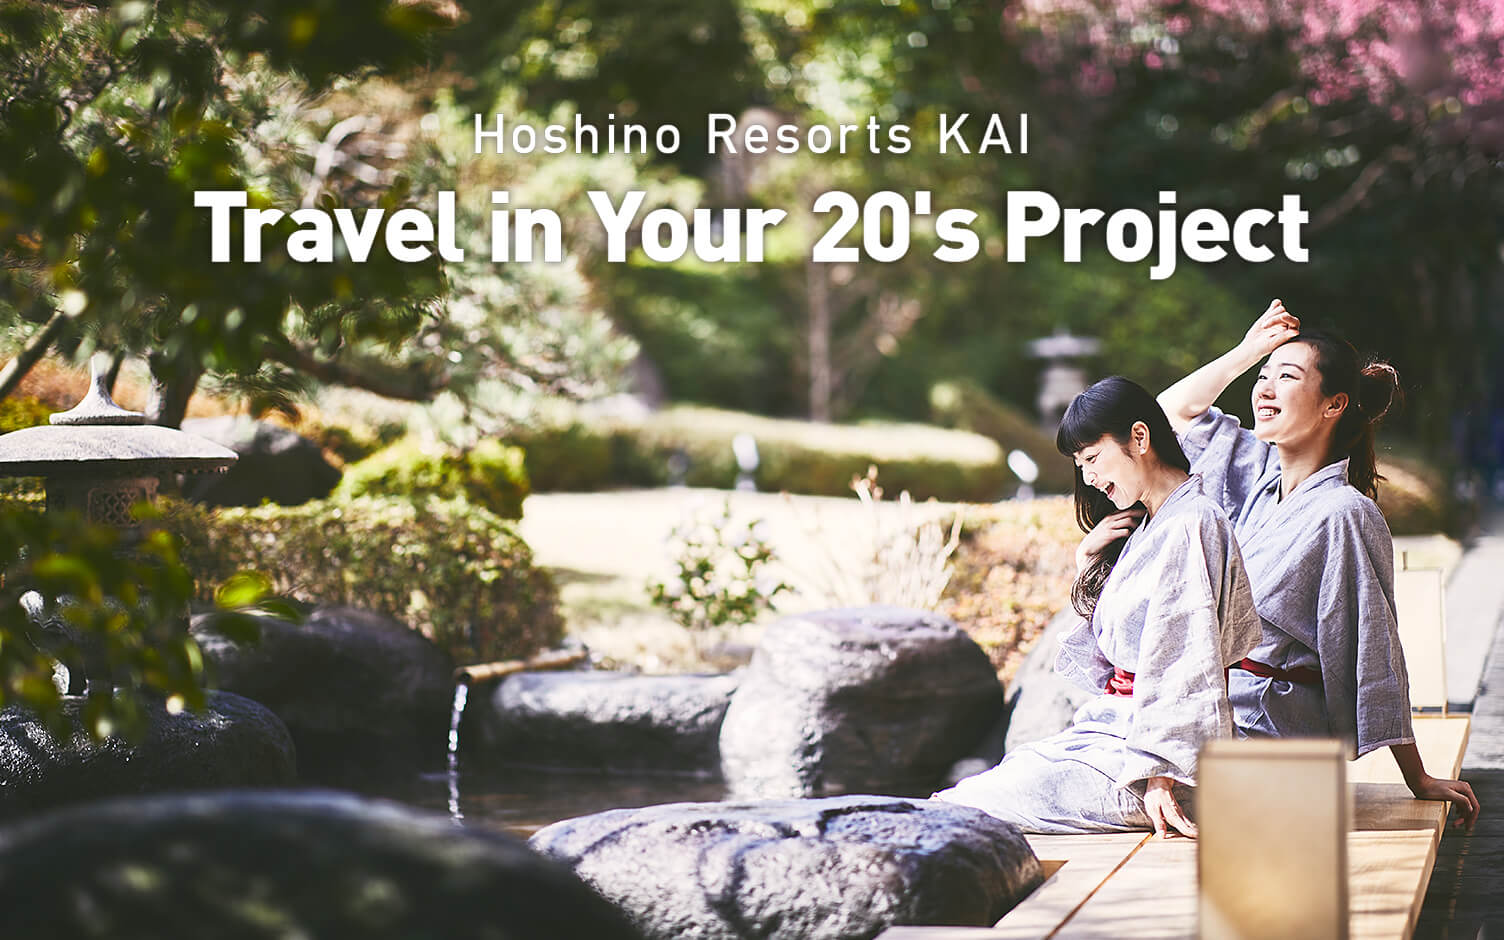 KAI, Travel in Your 20's Project